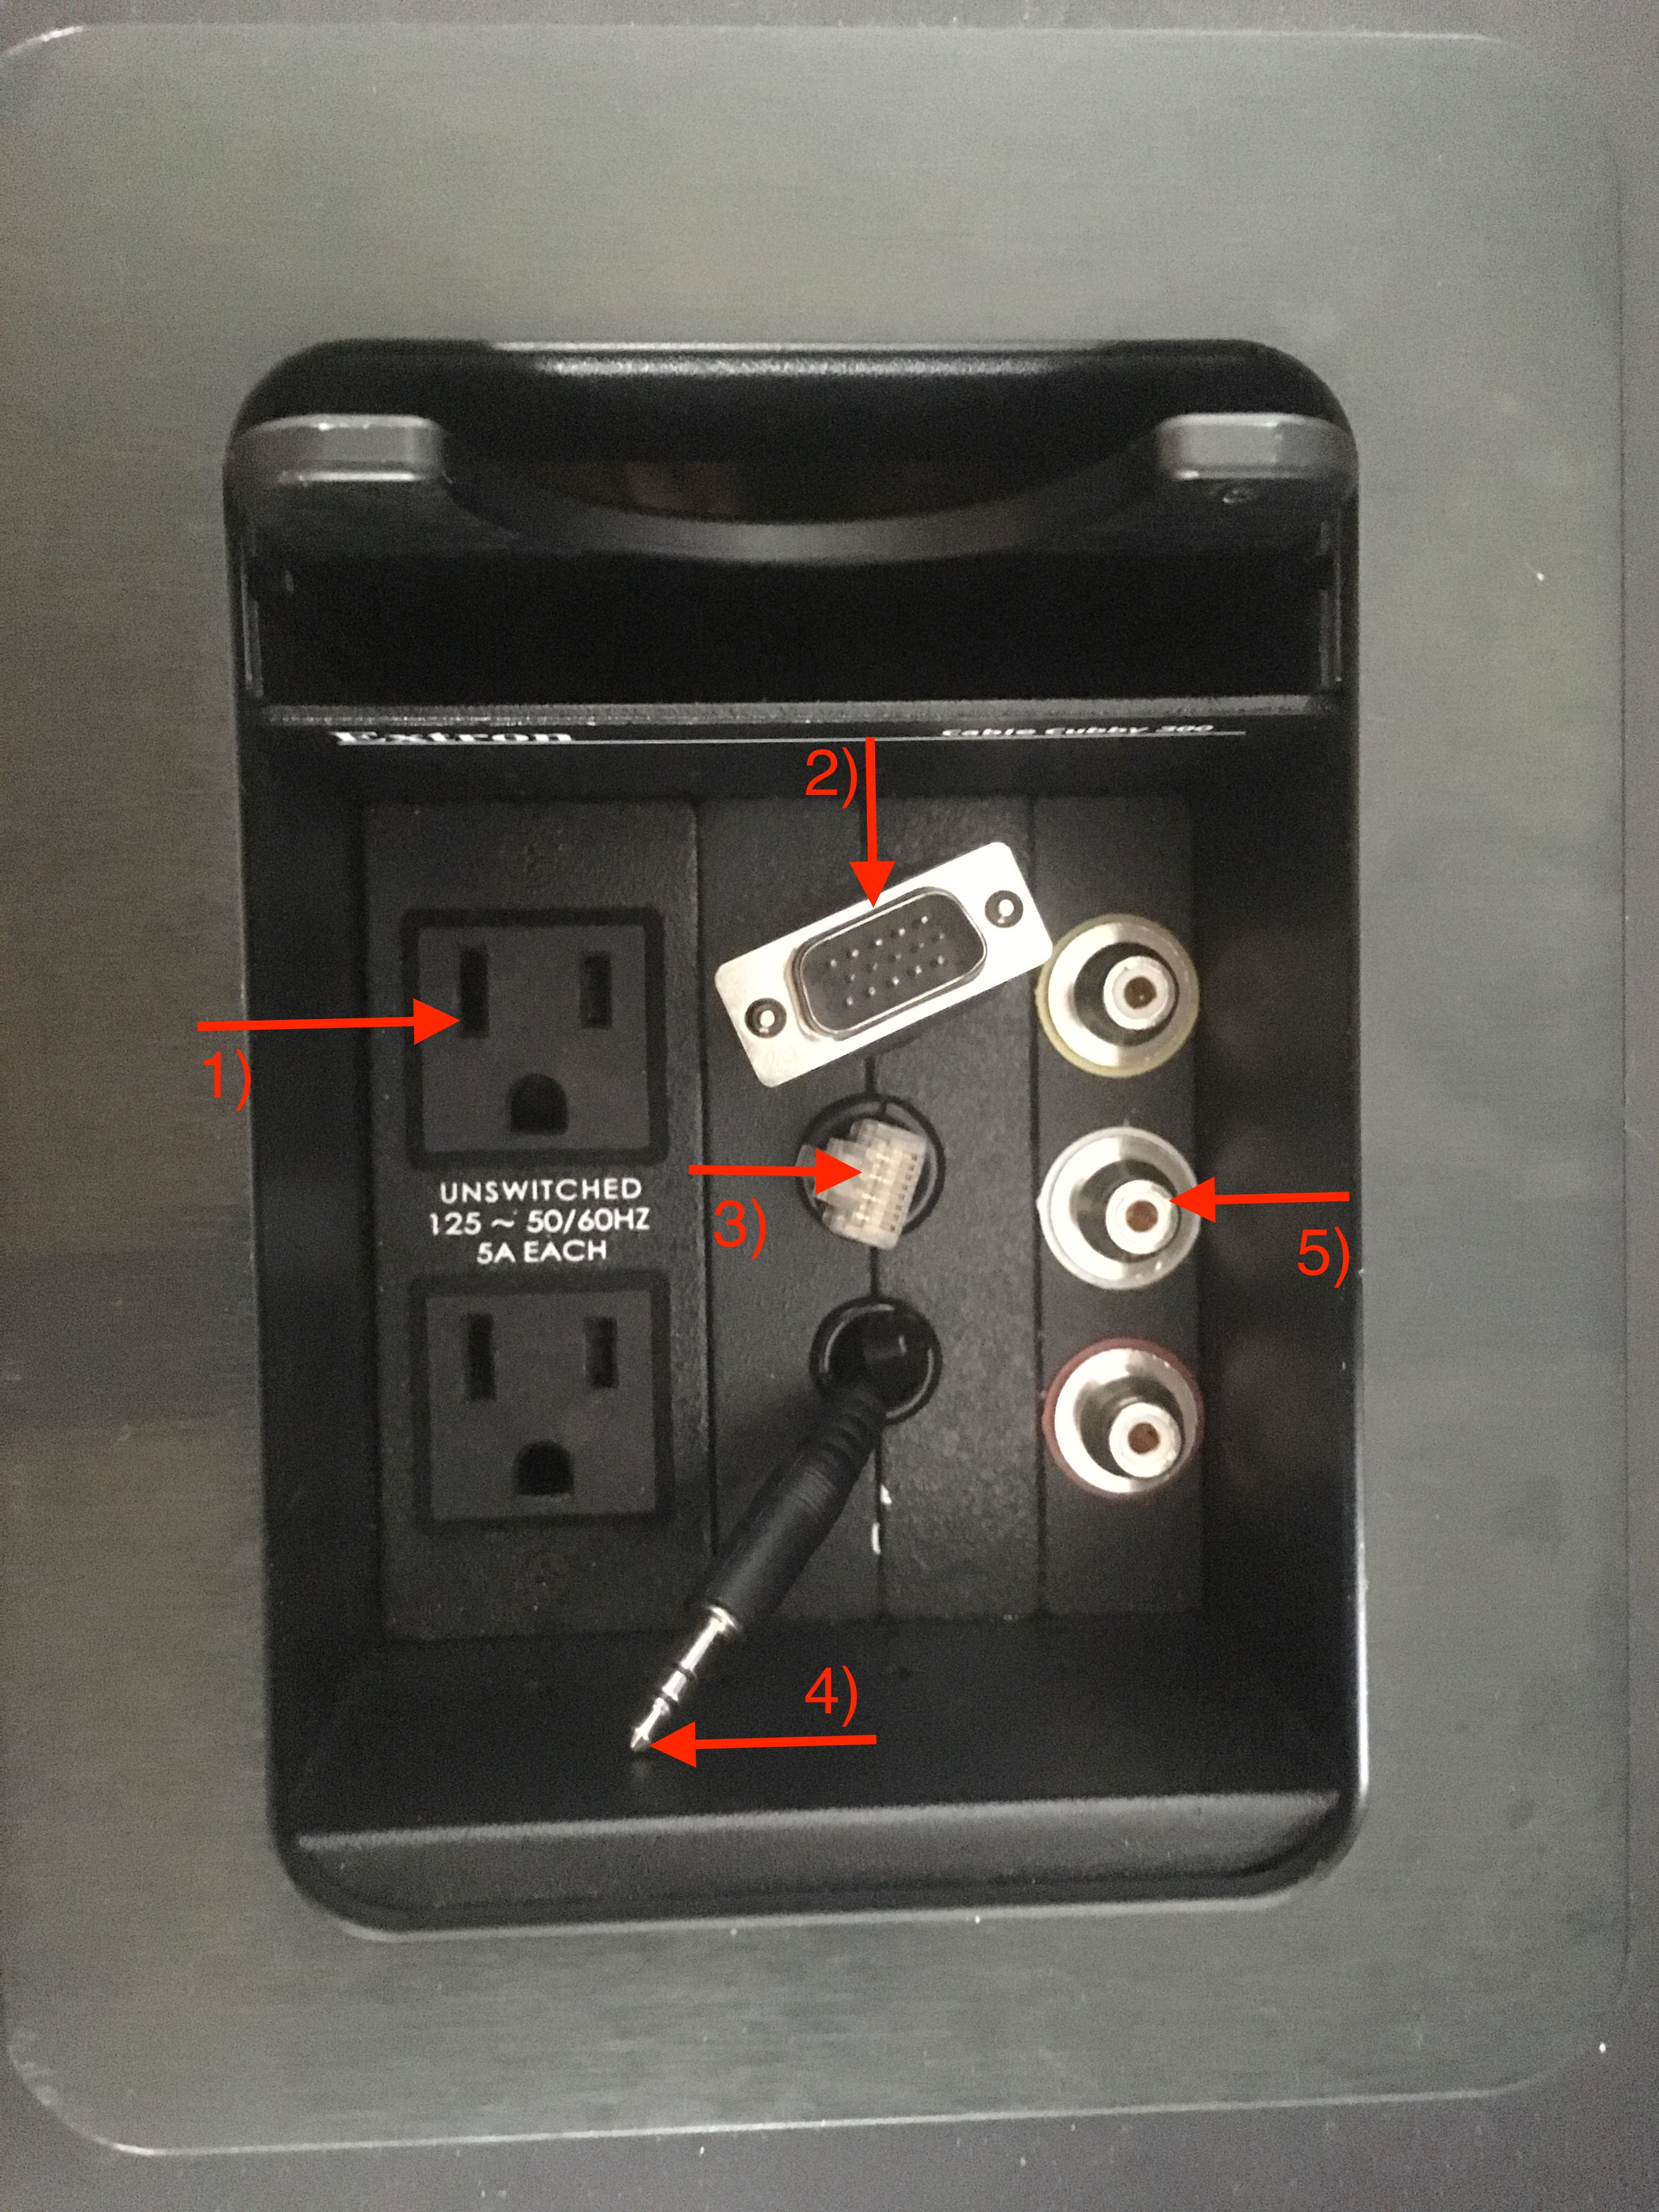 Photo of the cable cubby installed at the instructor's station with the power outlets, vga cable, audio cable, network cable, and inputs identified by number